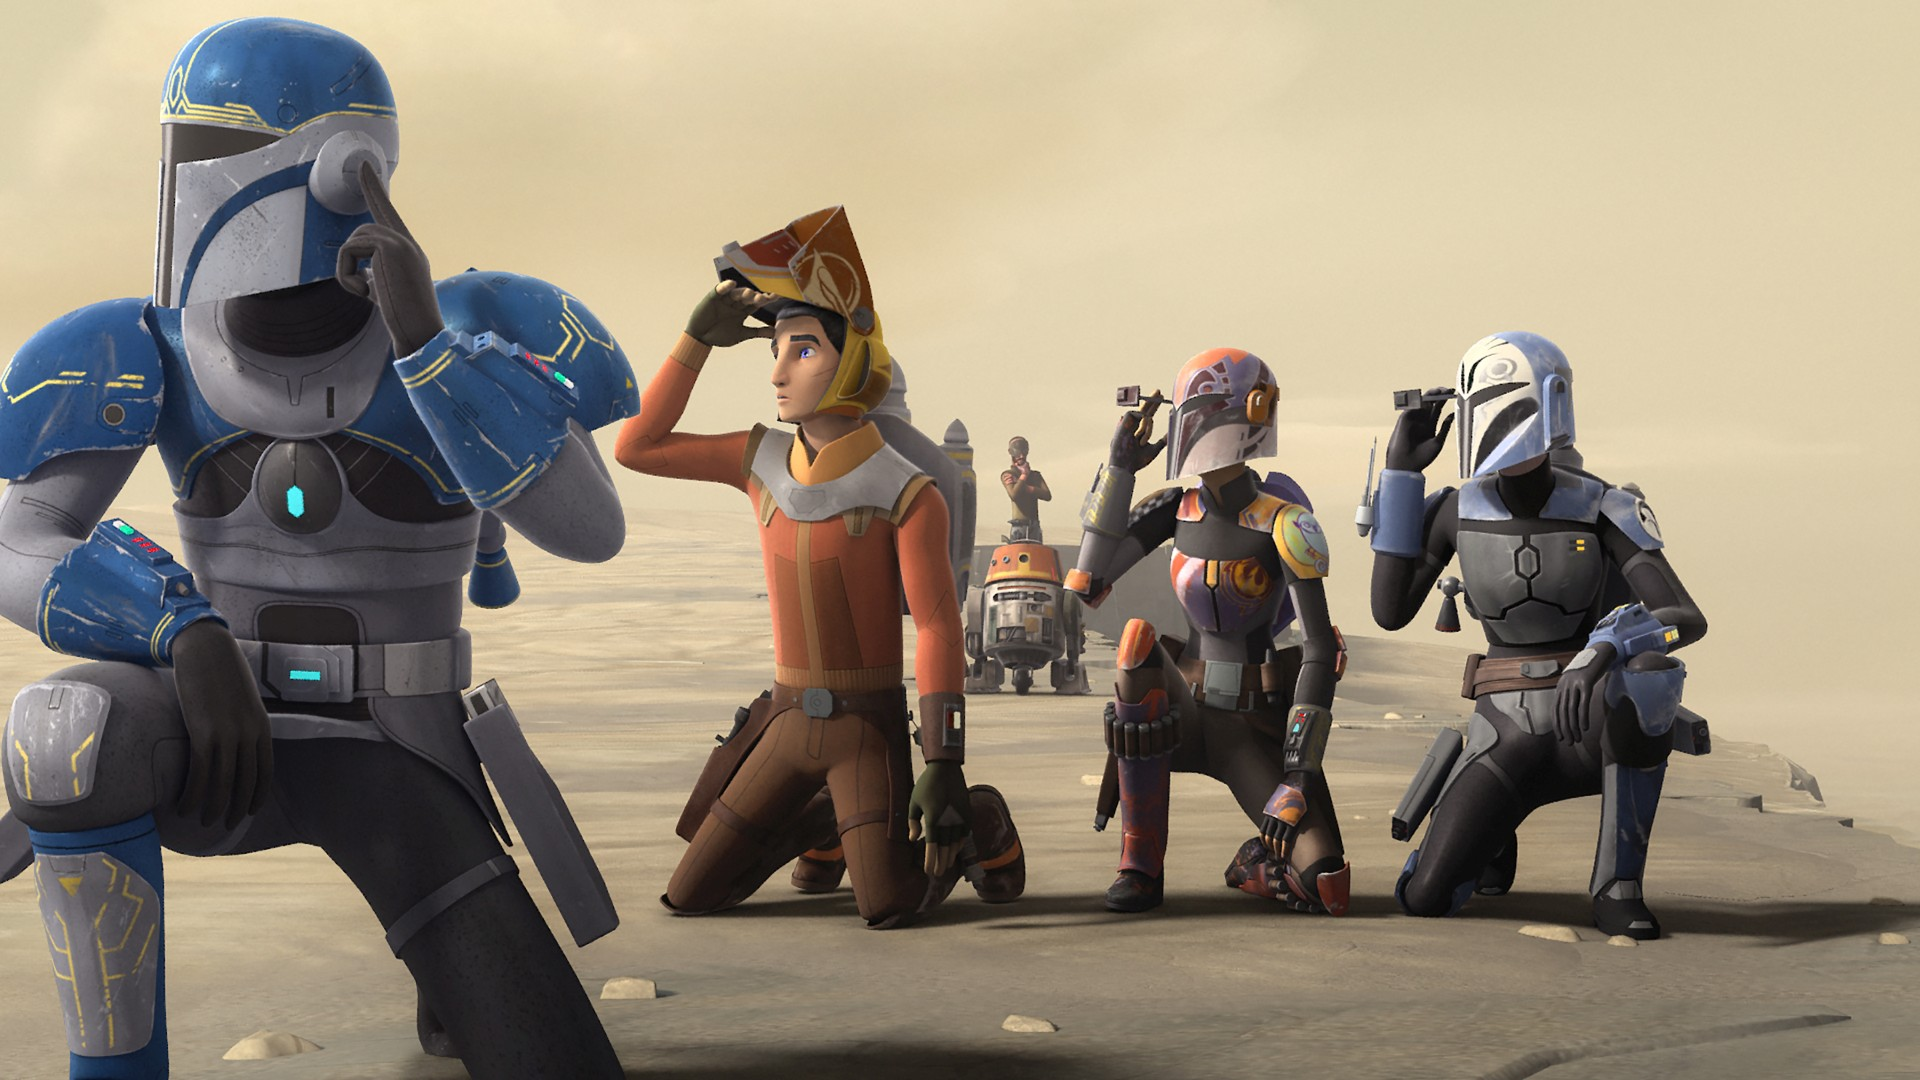 Star Wars Rebels Season 4 Premieres Tonight After Midnight